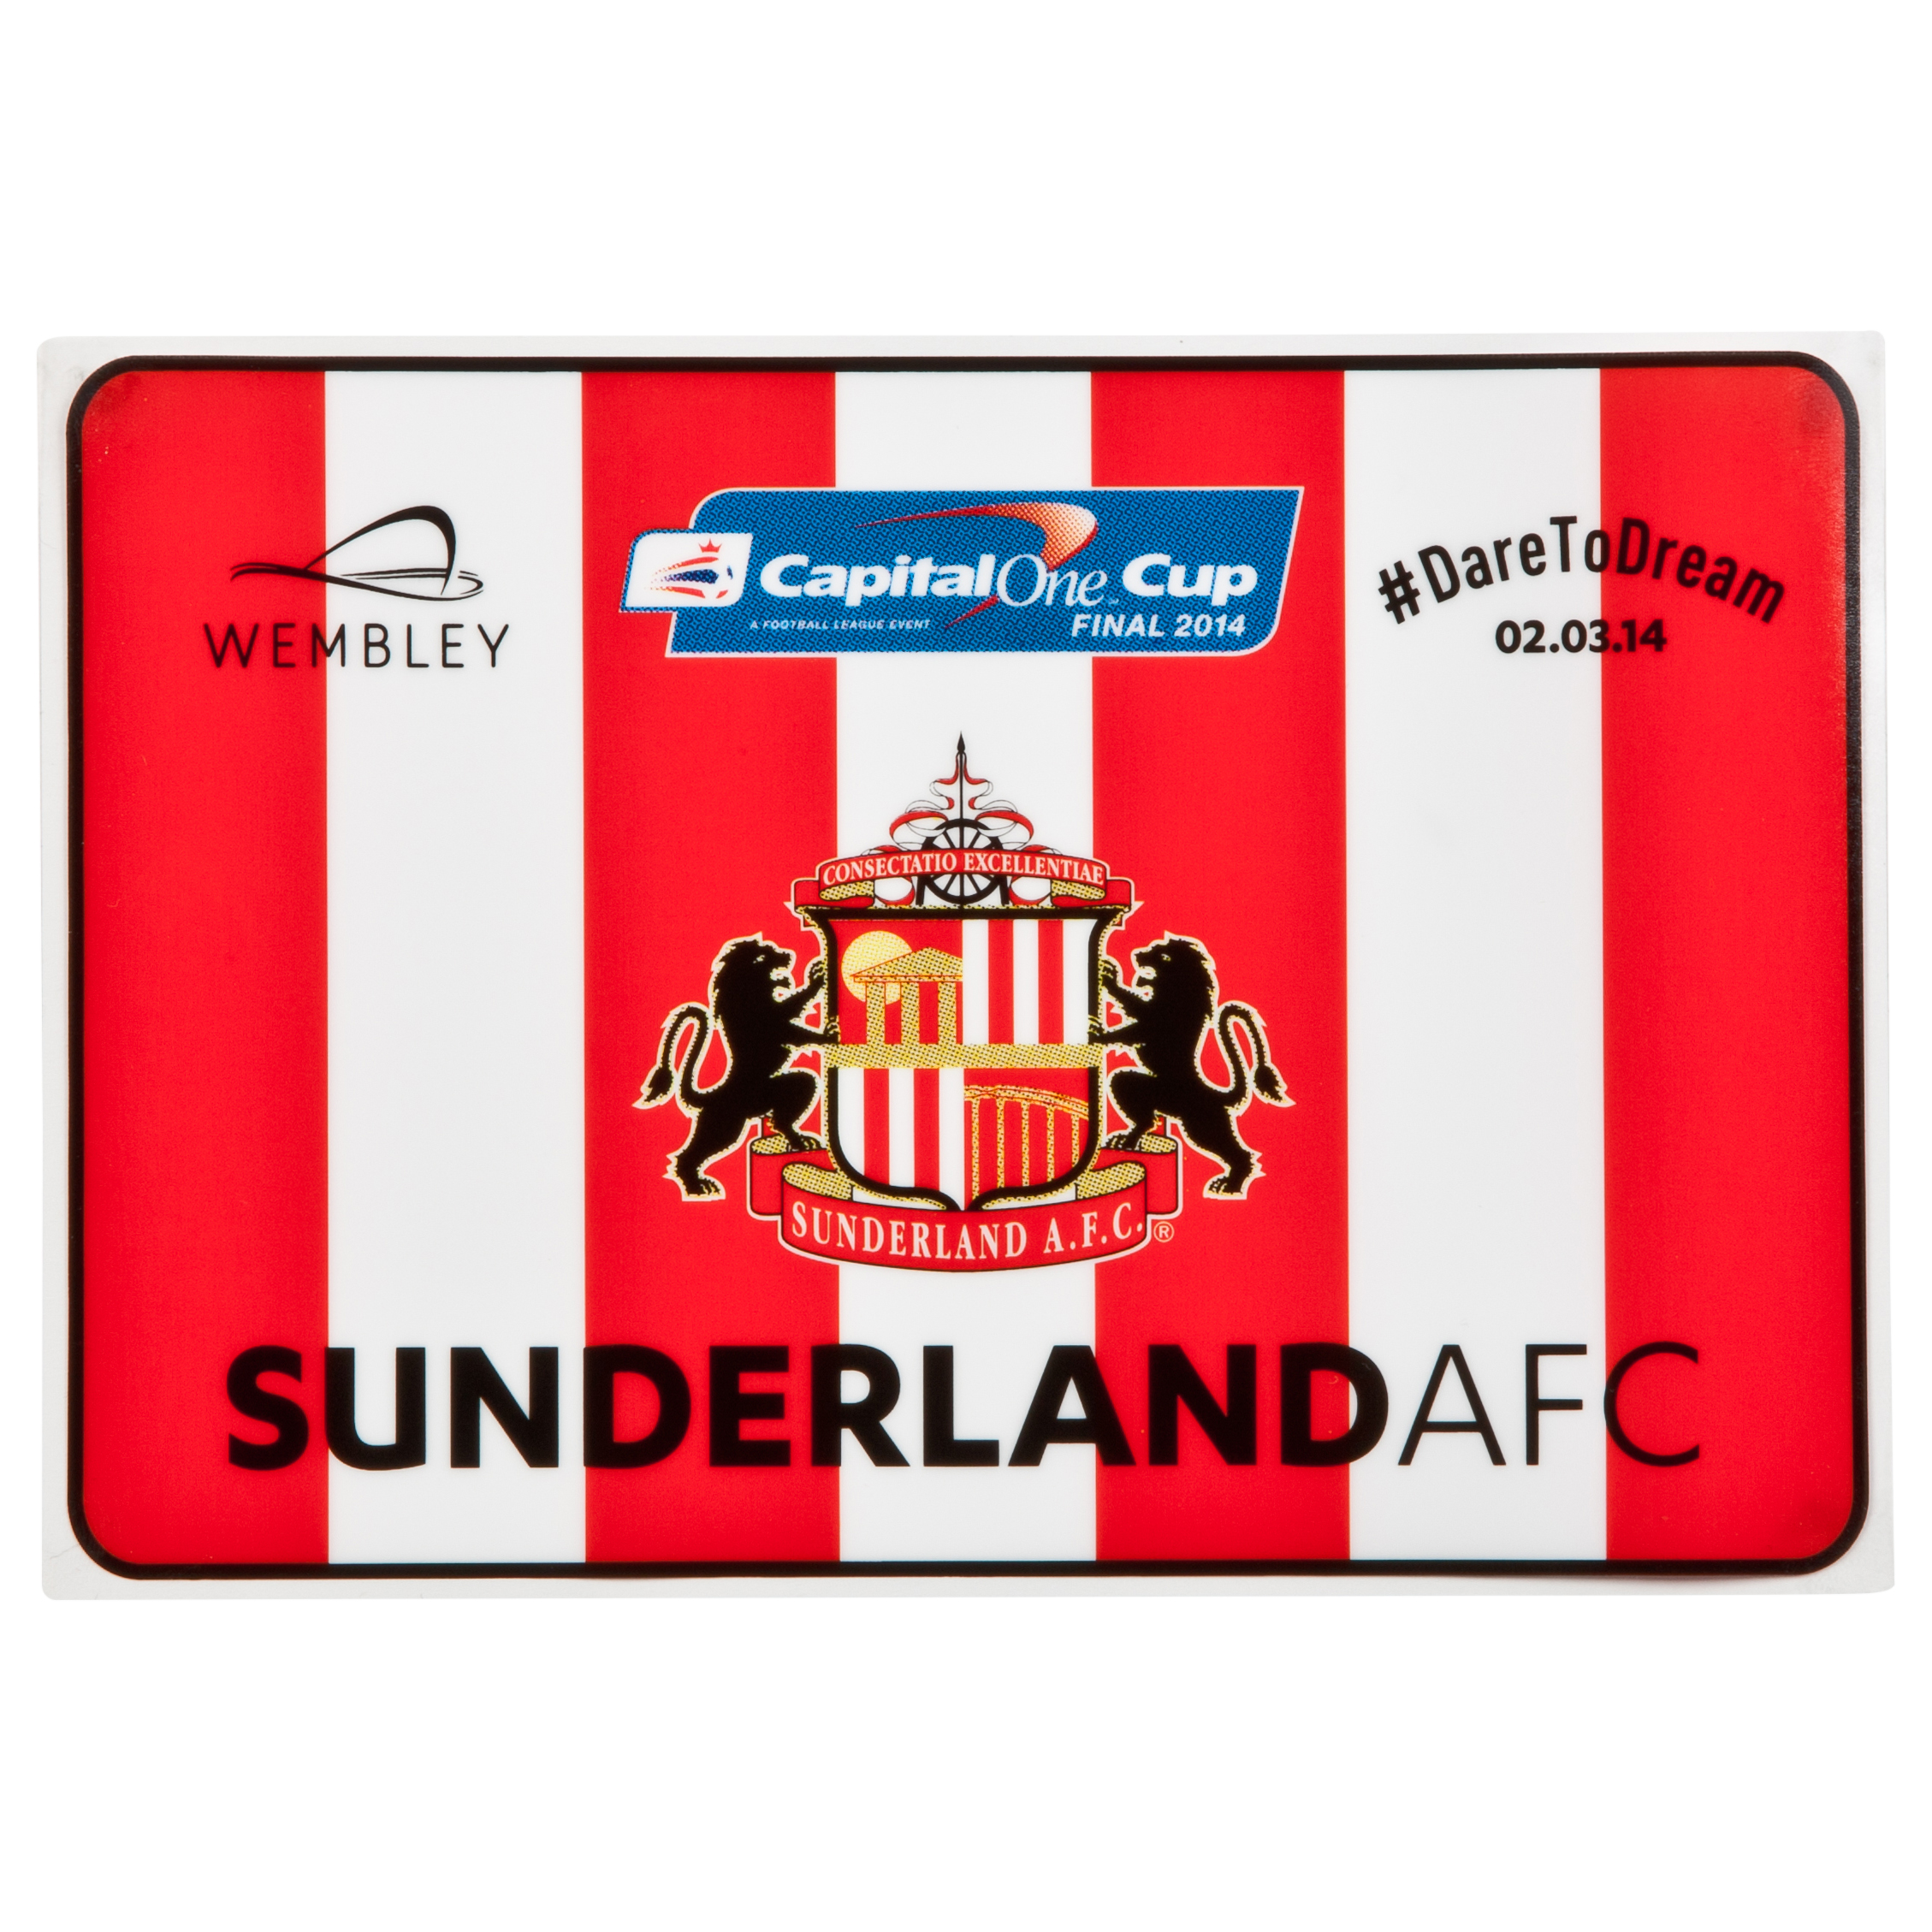 Sunderland Capital One Cup Final Car Sticker